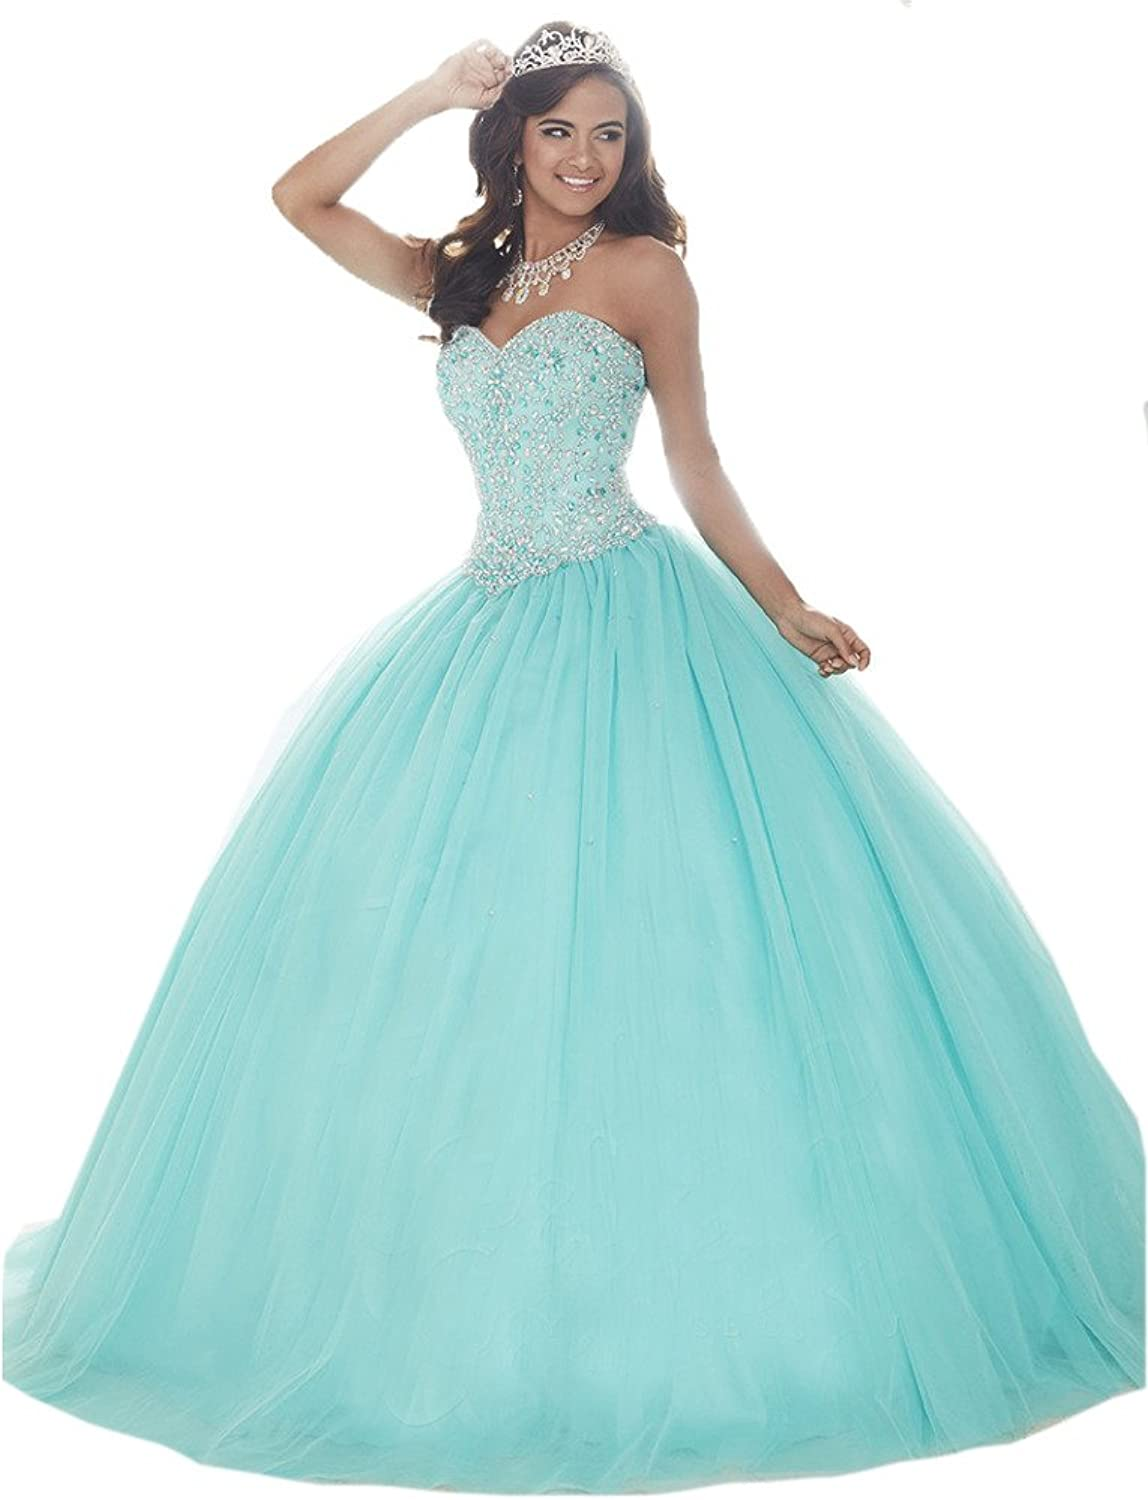 HSDJ Women's Party Ball Gowns Sweet 16 Crystals Tulle Quinceanera Dresses